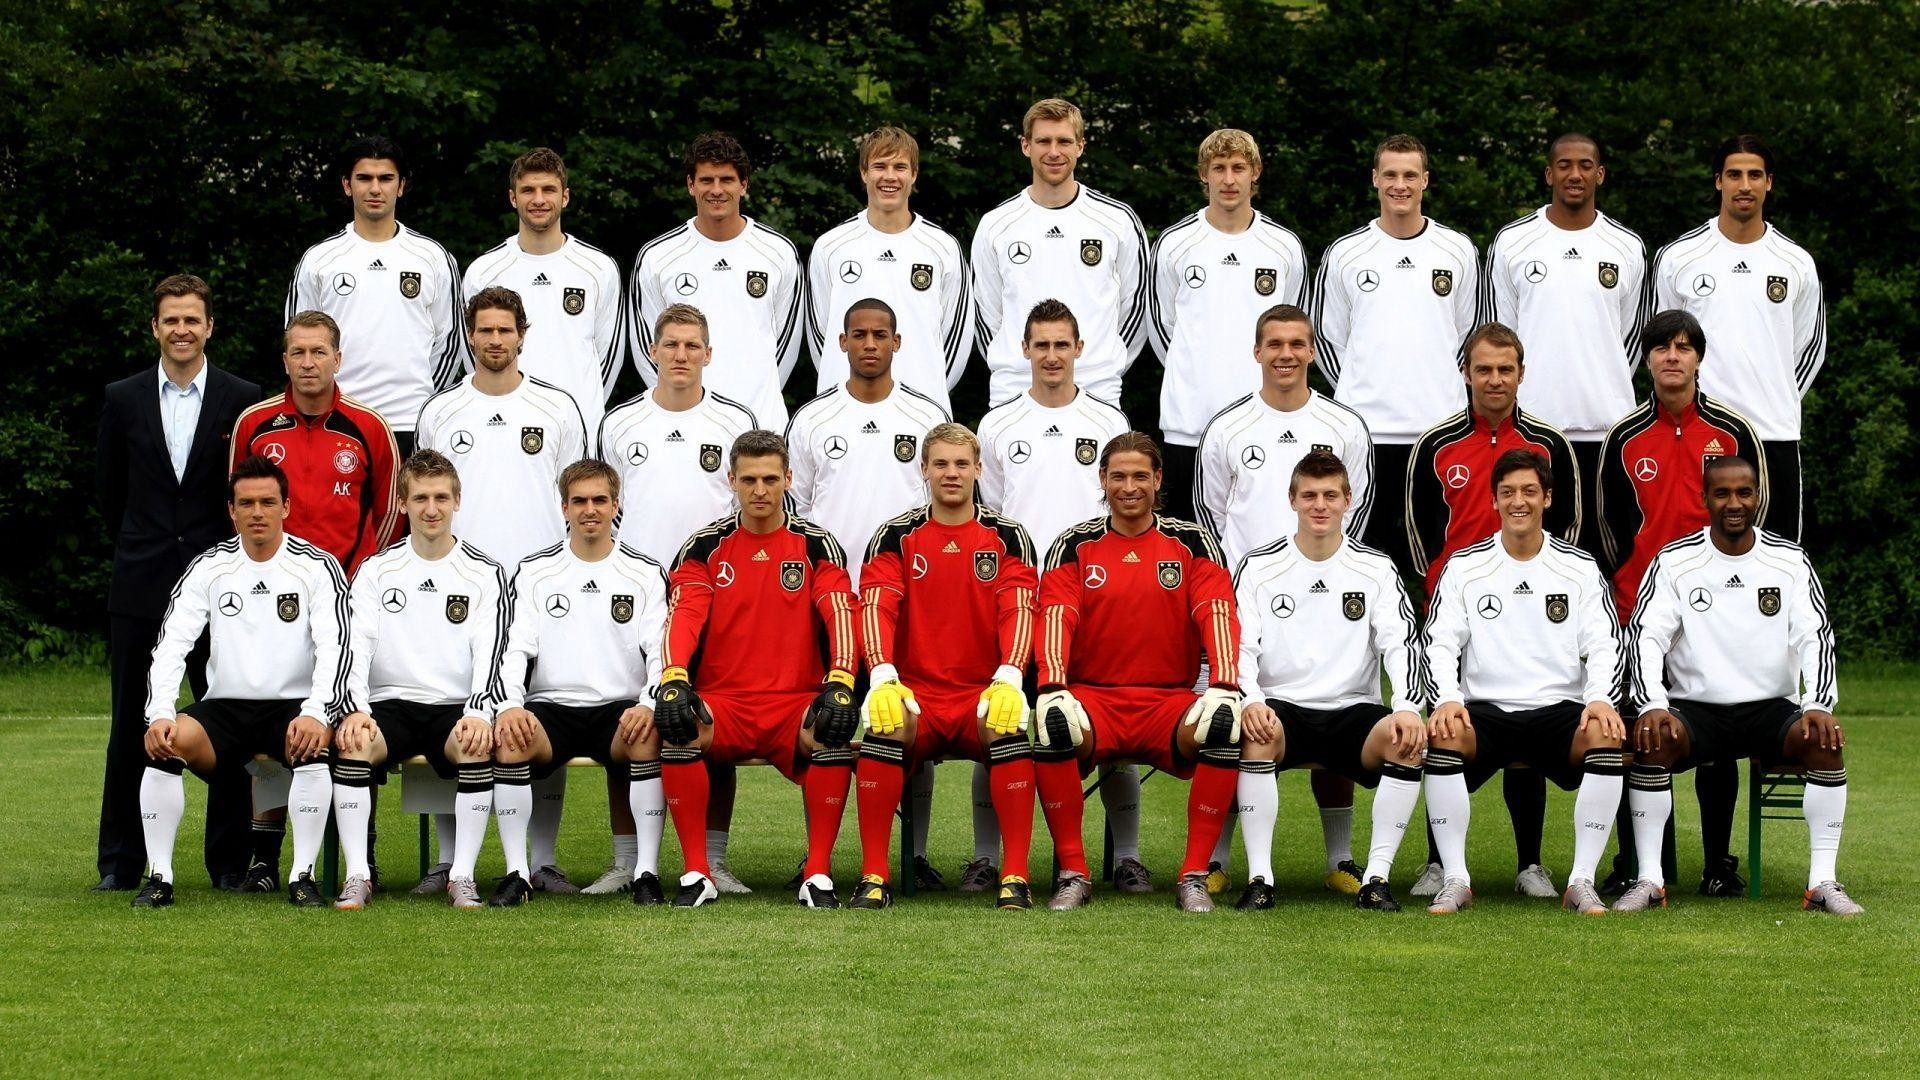 1920x1080 Germany National Football Team Wallpaper - HD Wallpapers .